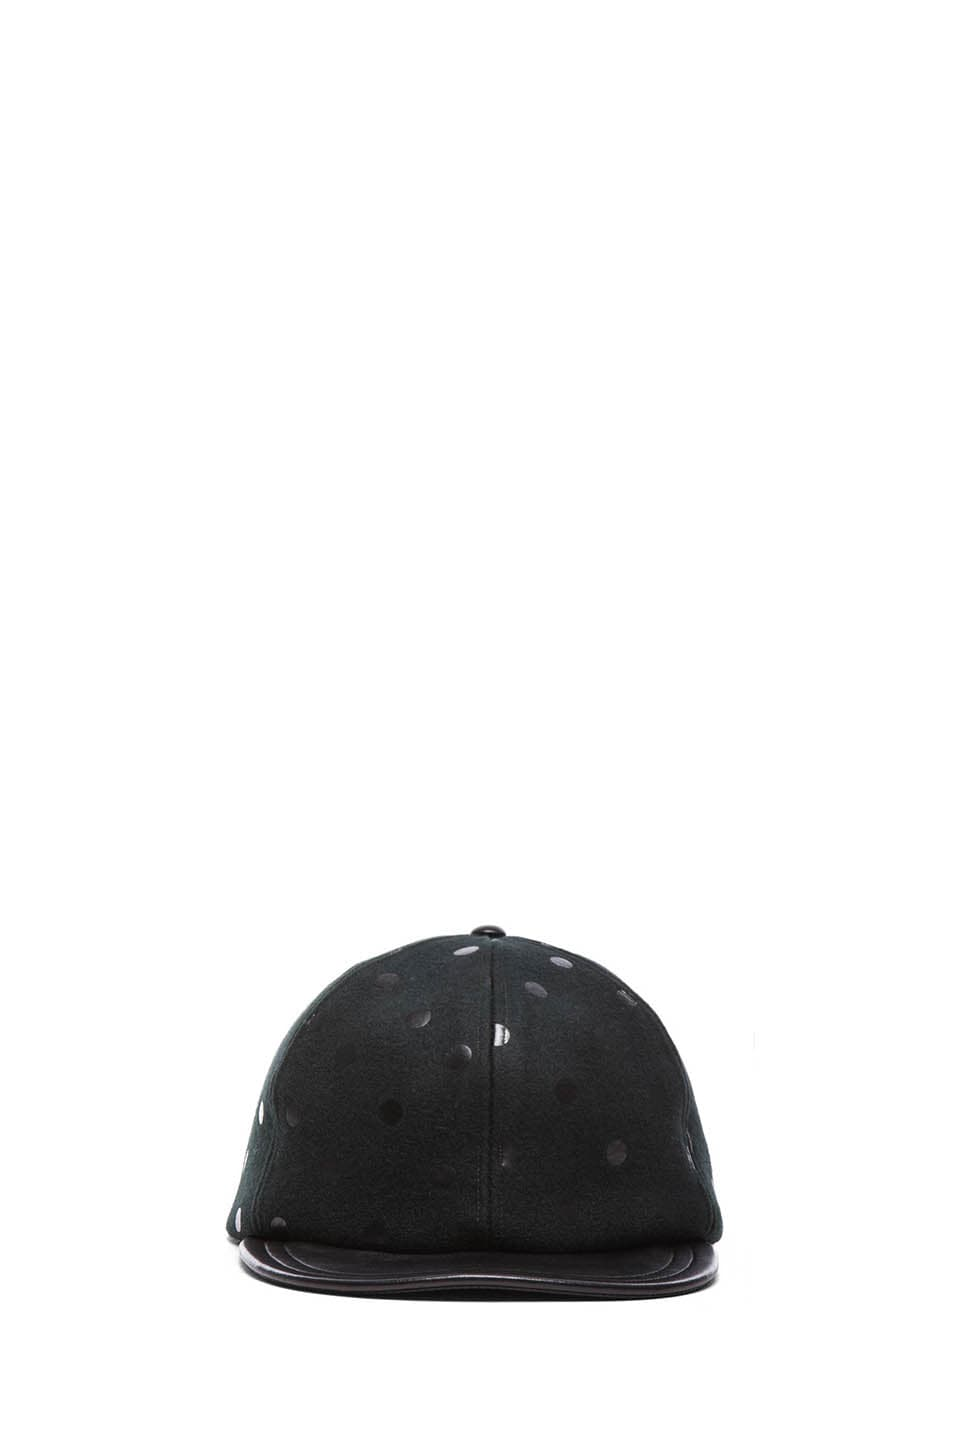 Image 1 of Eugenia Kim Darien Mixed Leather Cap in Black